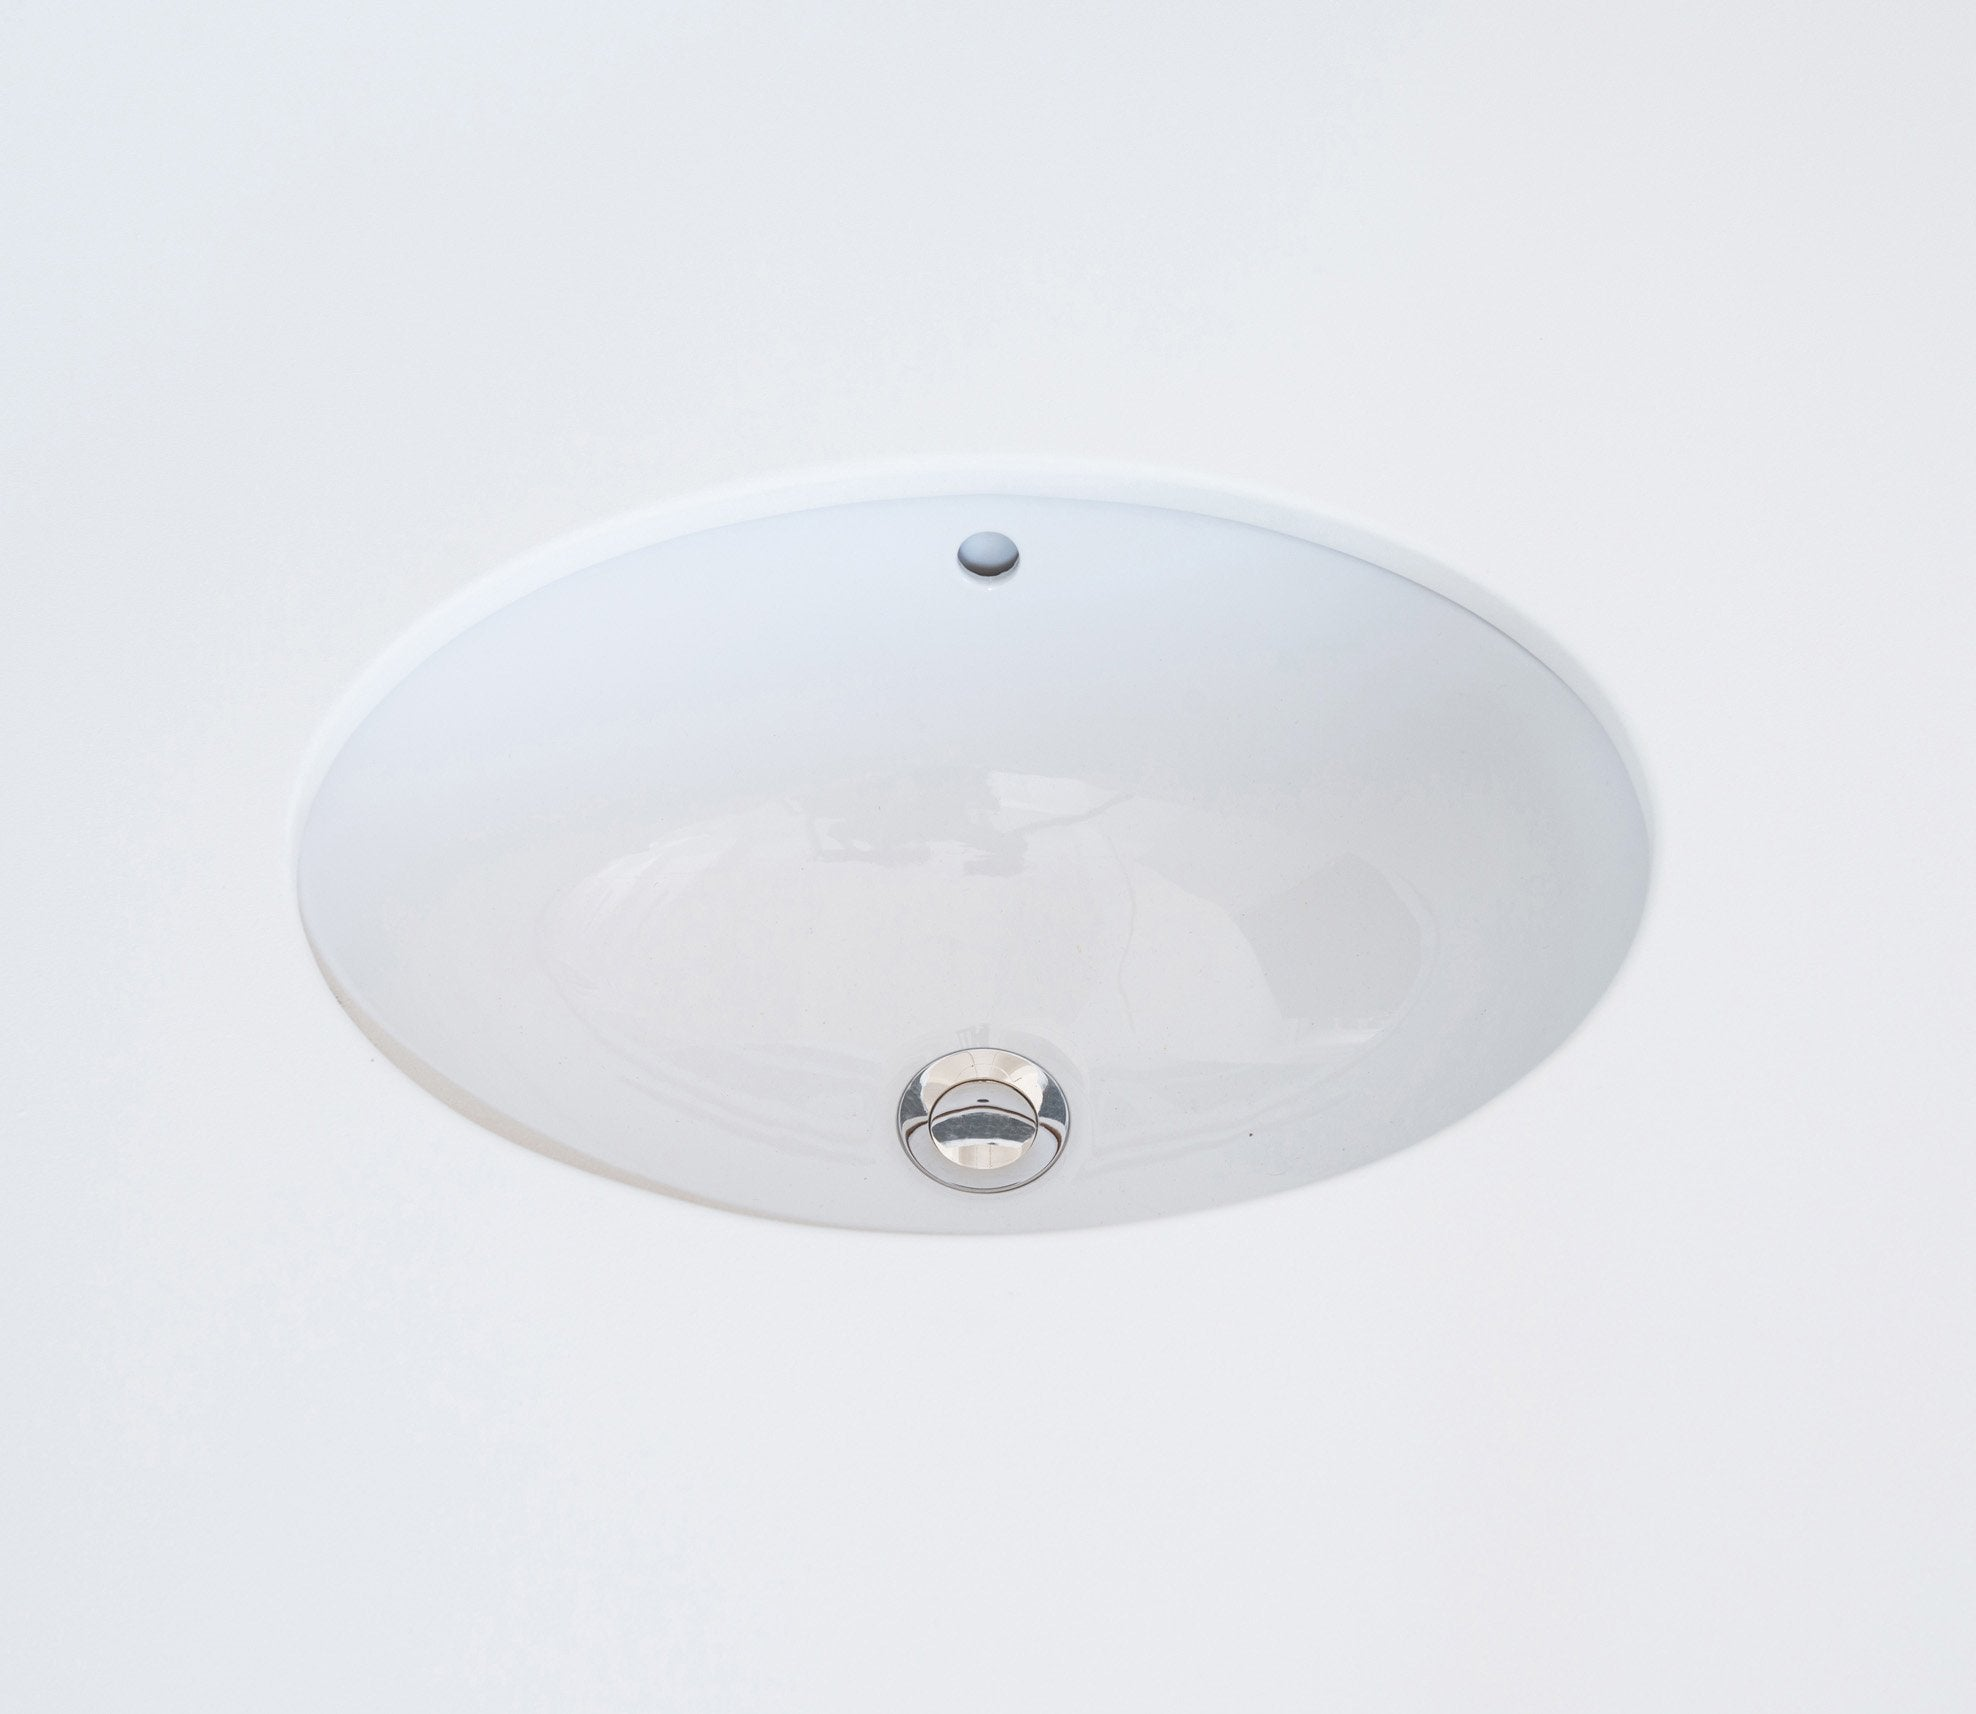 Ceramic Undermount Basin Oval 42 cm Product Image 1